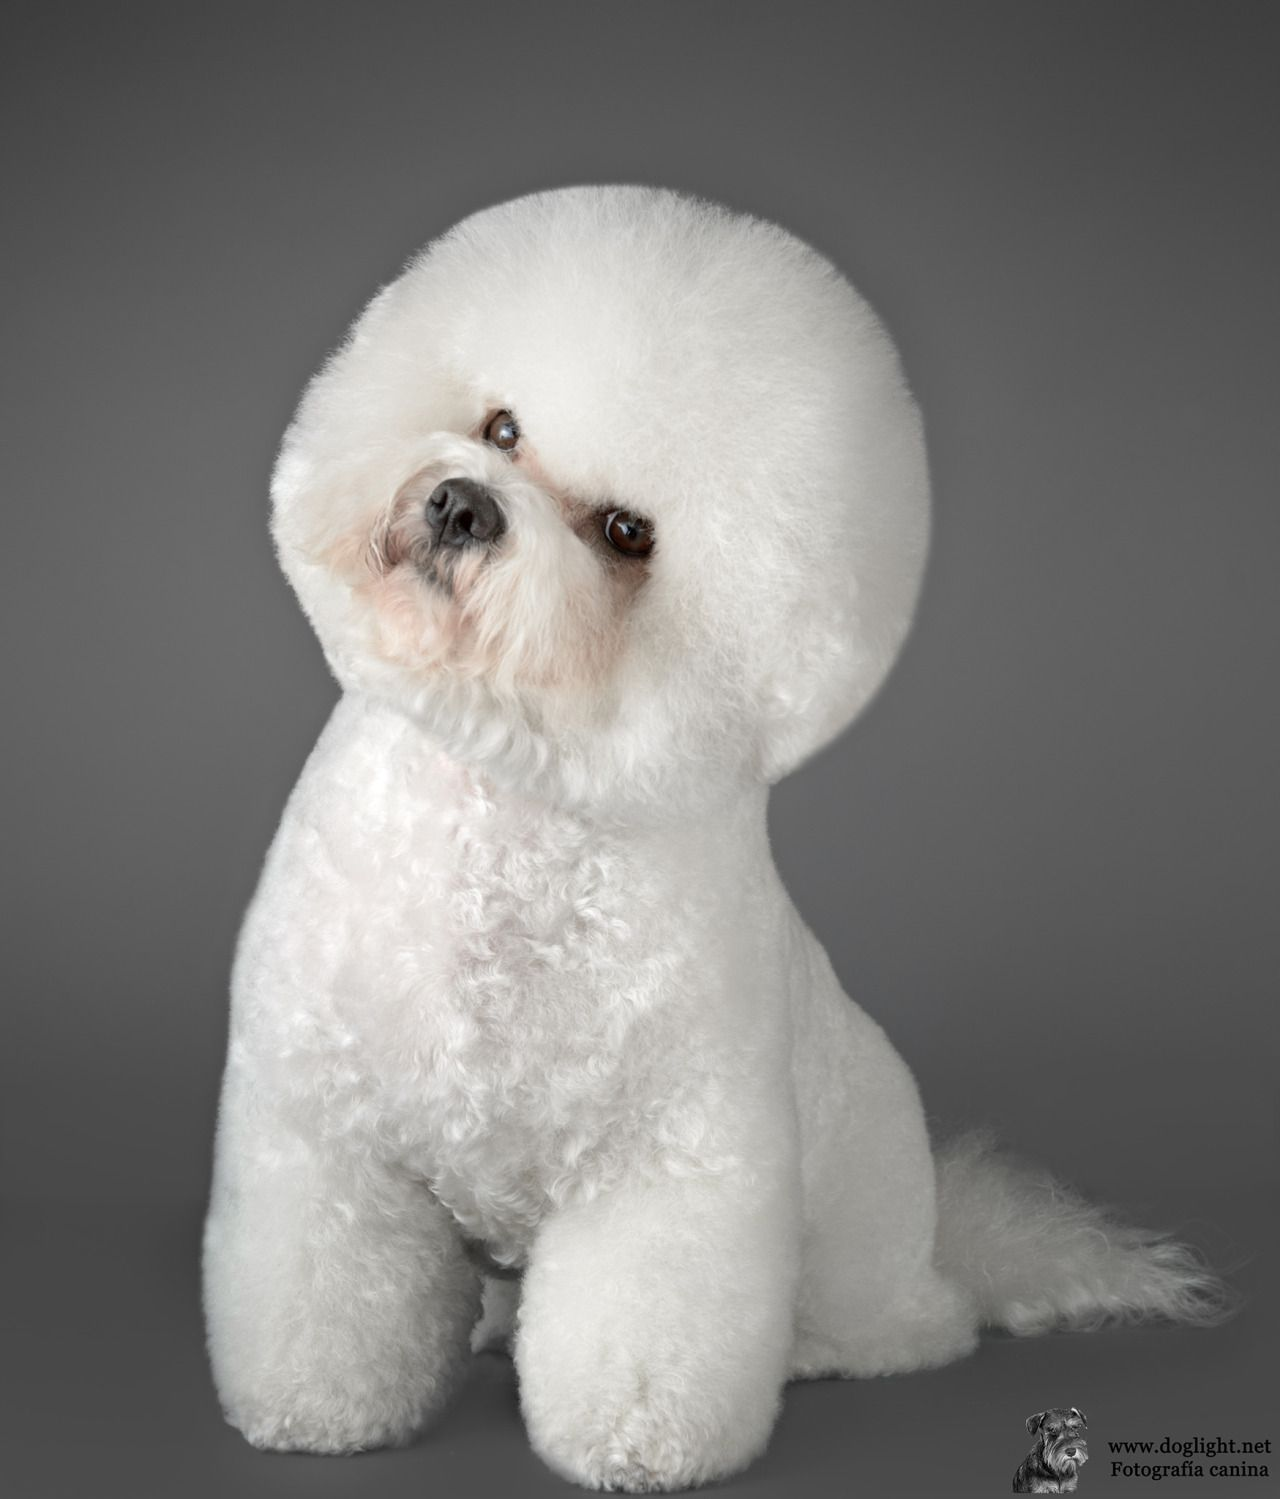 Tootsie This Is Tootsie A Bichon Frise Girl The Character Of